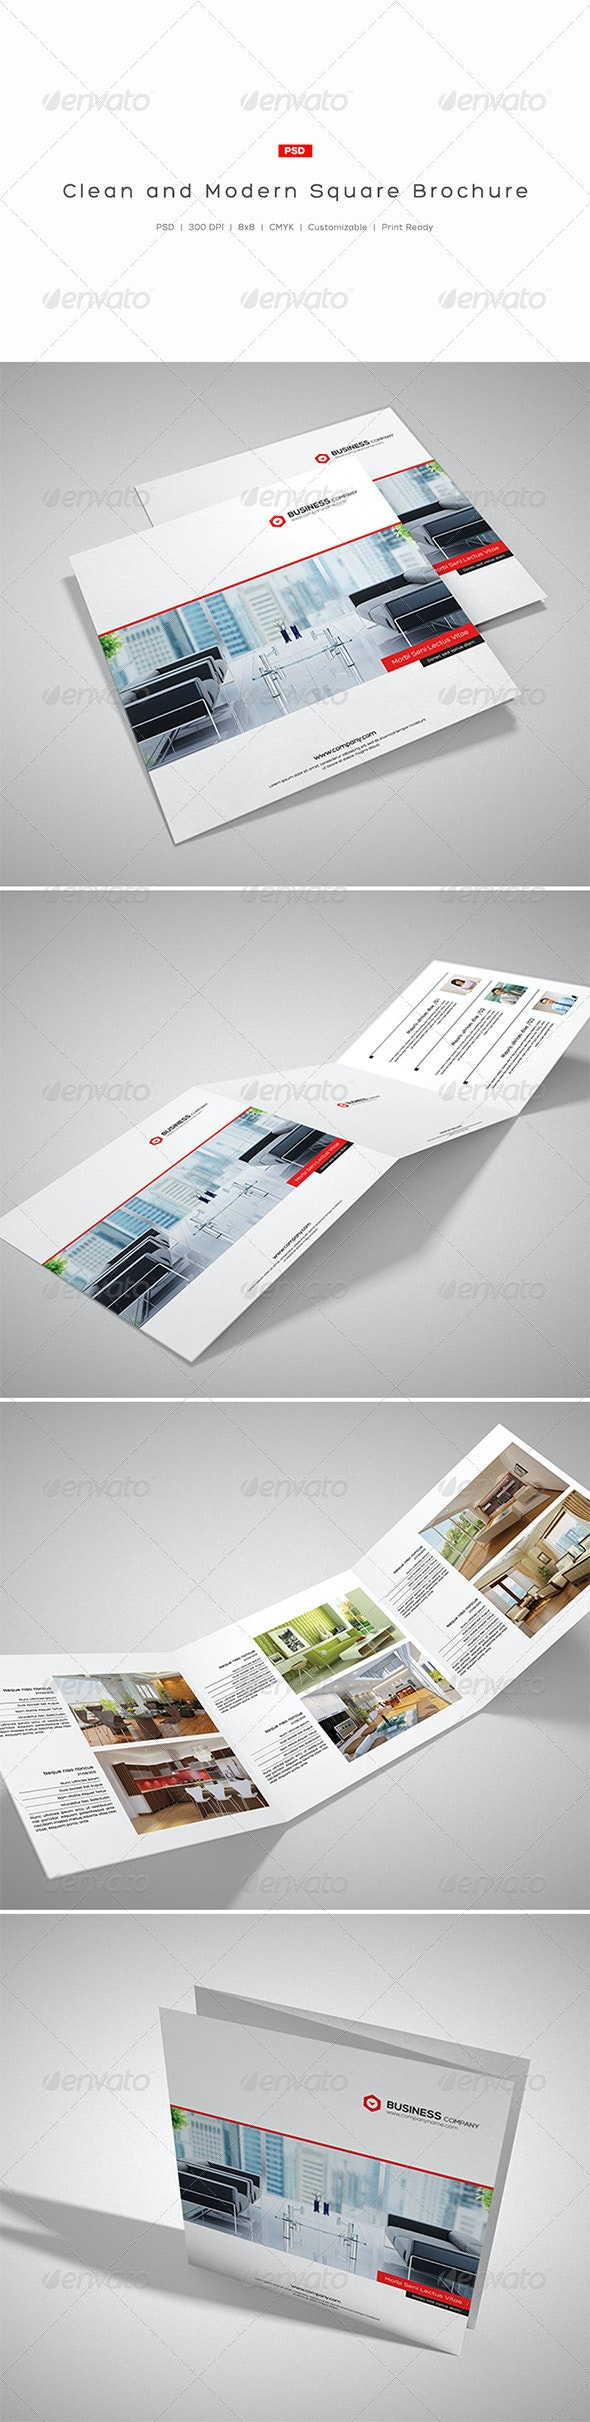 Clean and Modern Square Brochure - Corporate Brochures